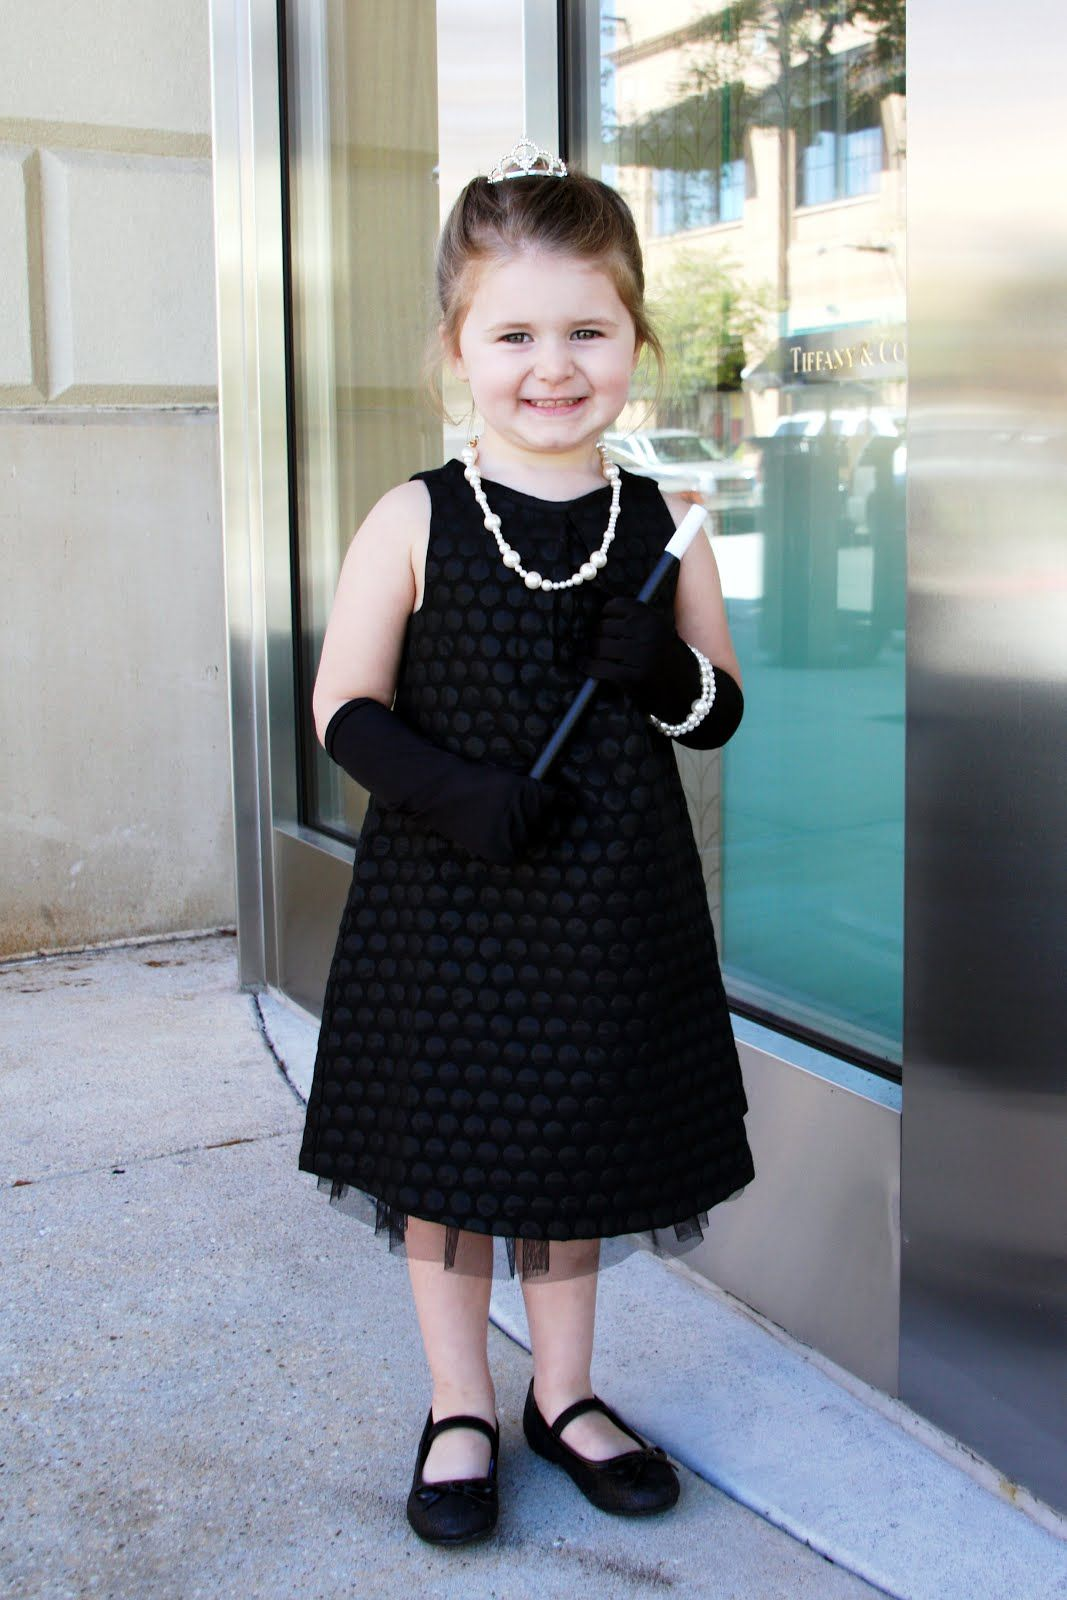 emme claire as holly golightly ~ breakfast at tiffany's (mini audrey